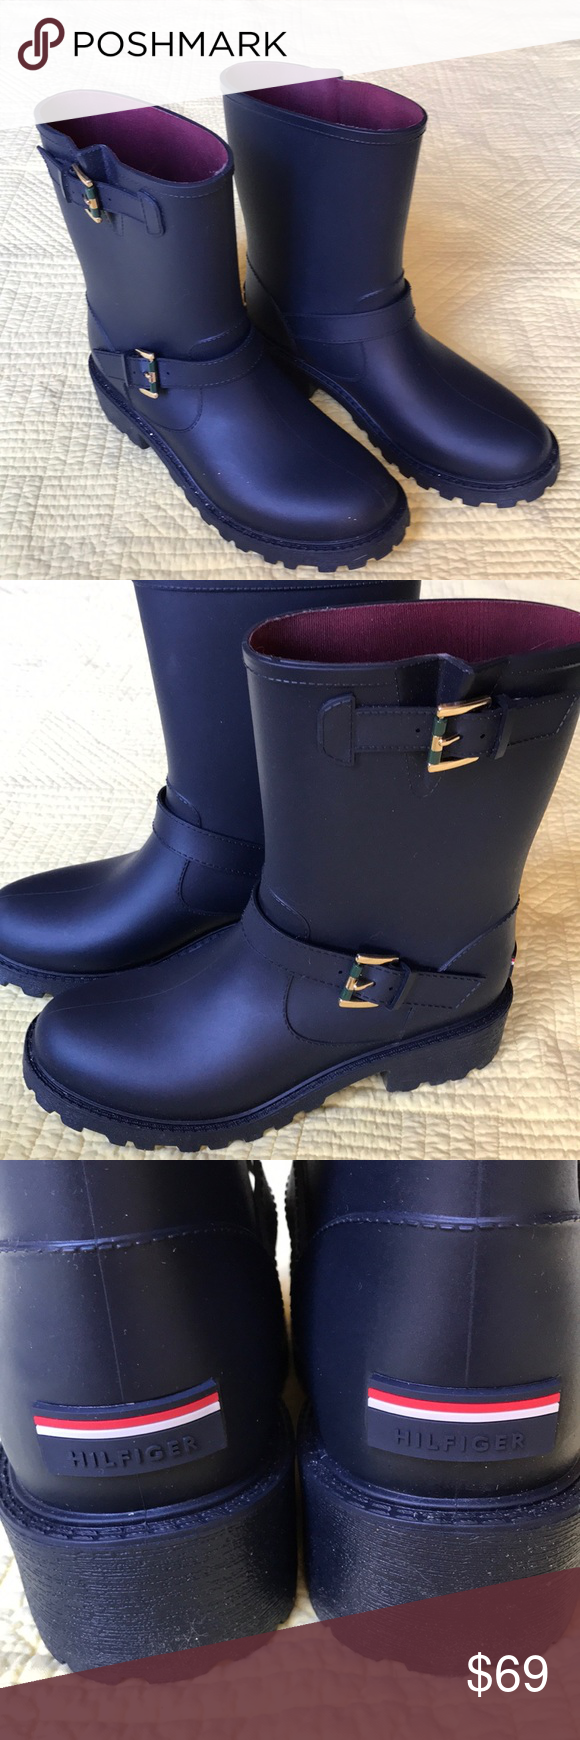 5ebade9f463e7a Tommy Hilfiger Navy Blue Rubber Rain Boots Hilfiger mid-calf navy Rain Boots  with gripping tread and two buckles on the outside. US size 9.